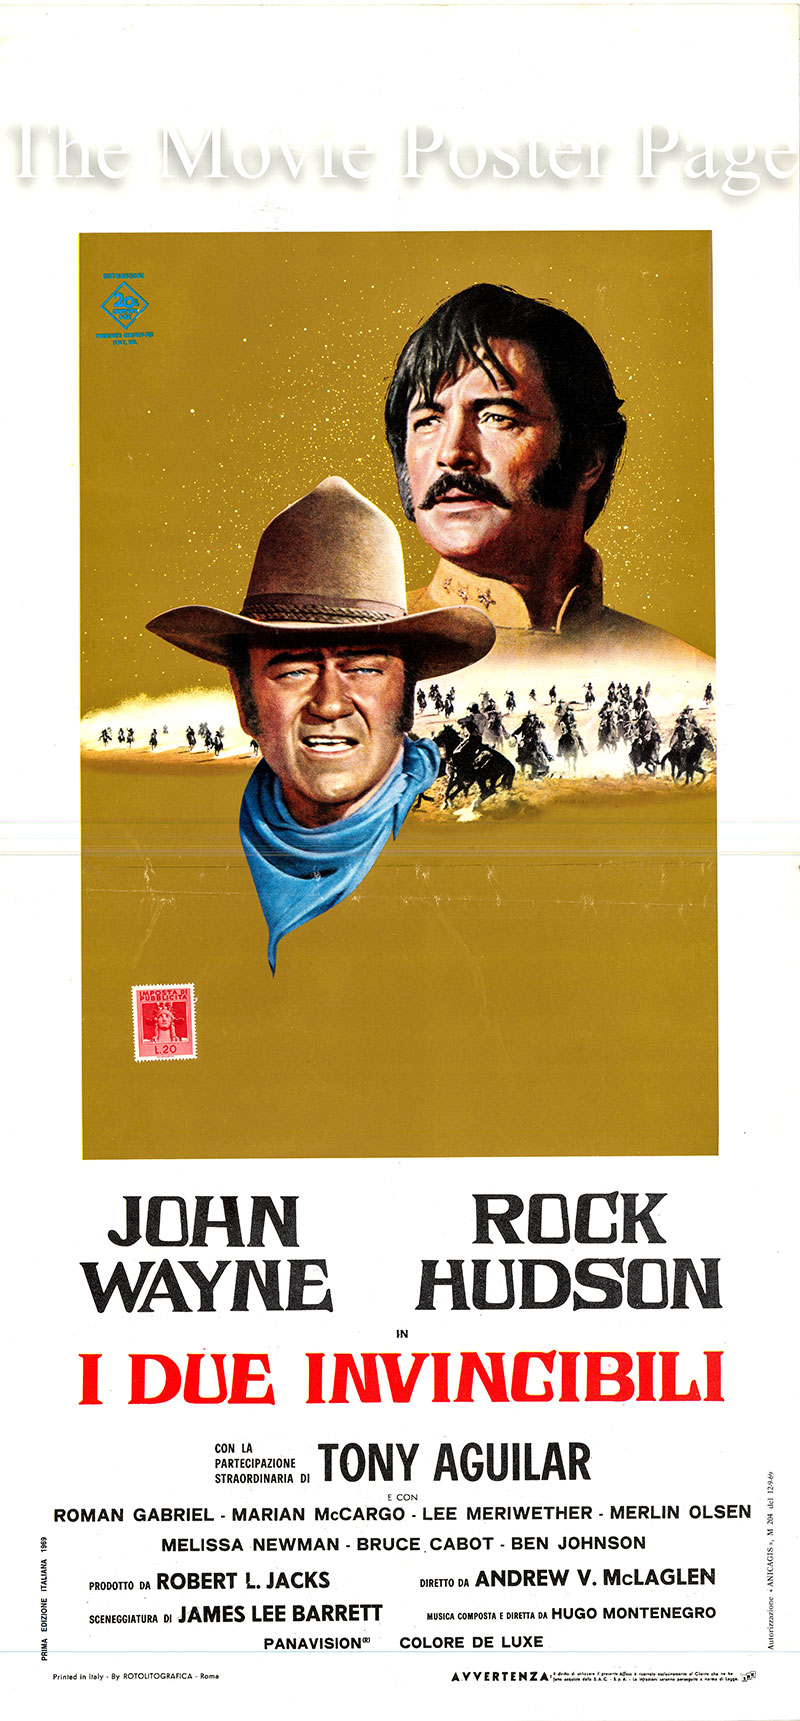 Pictured is an Italian locandina poster for the 1969 Andrew V. McLaglen film <i>The Undefeated</i> based on a story by Stanley Hough, screenplay by James Lee Barrett and starring John Wayne as Colonel John Henry Thomas.